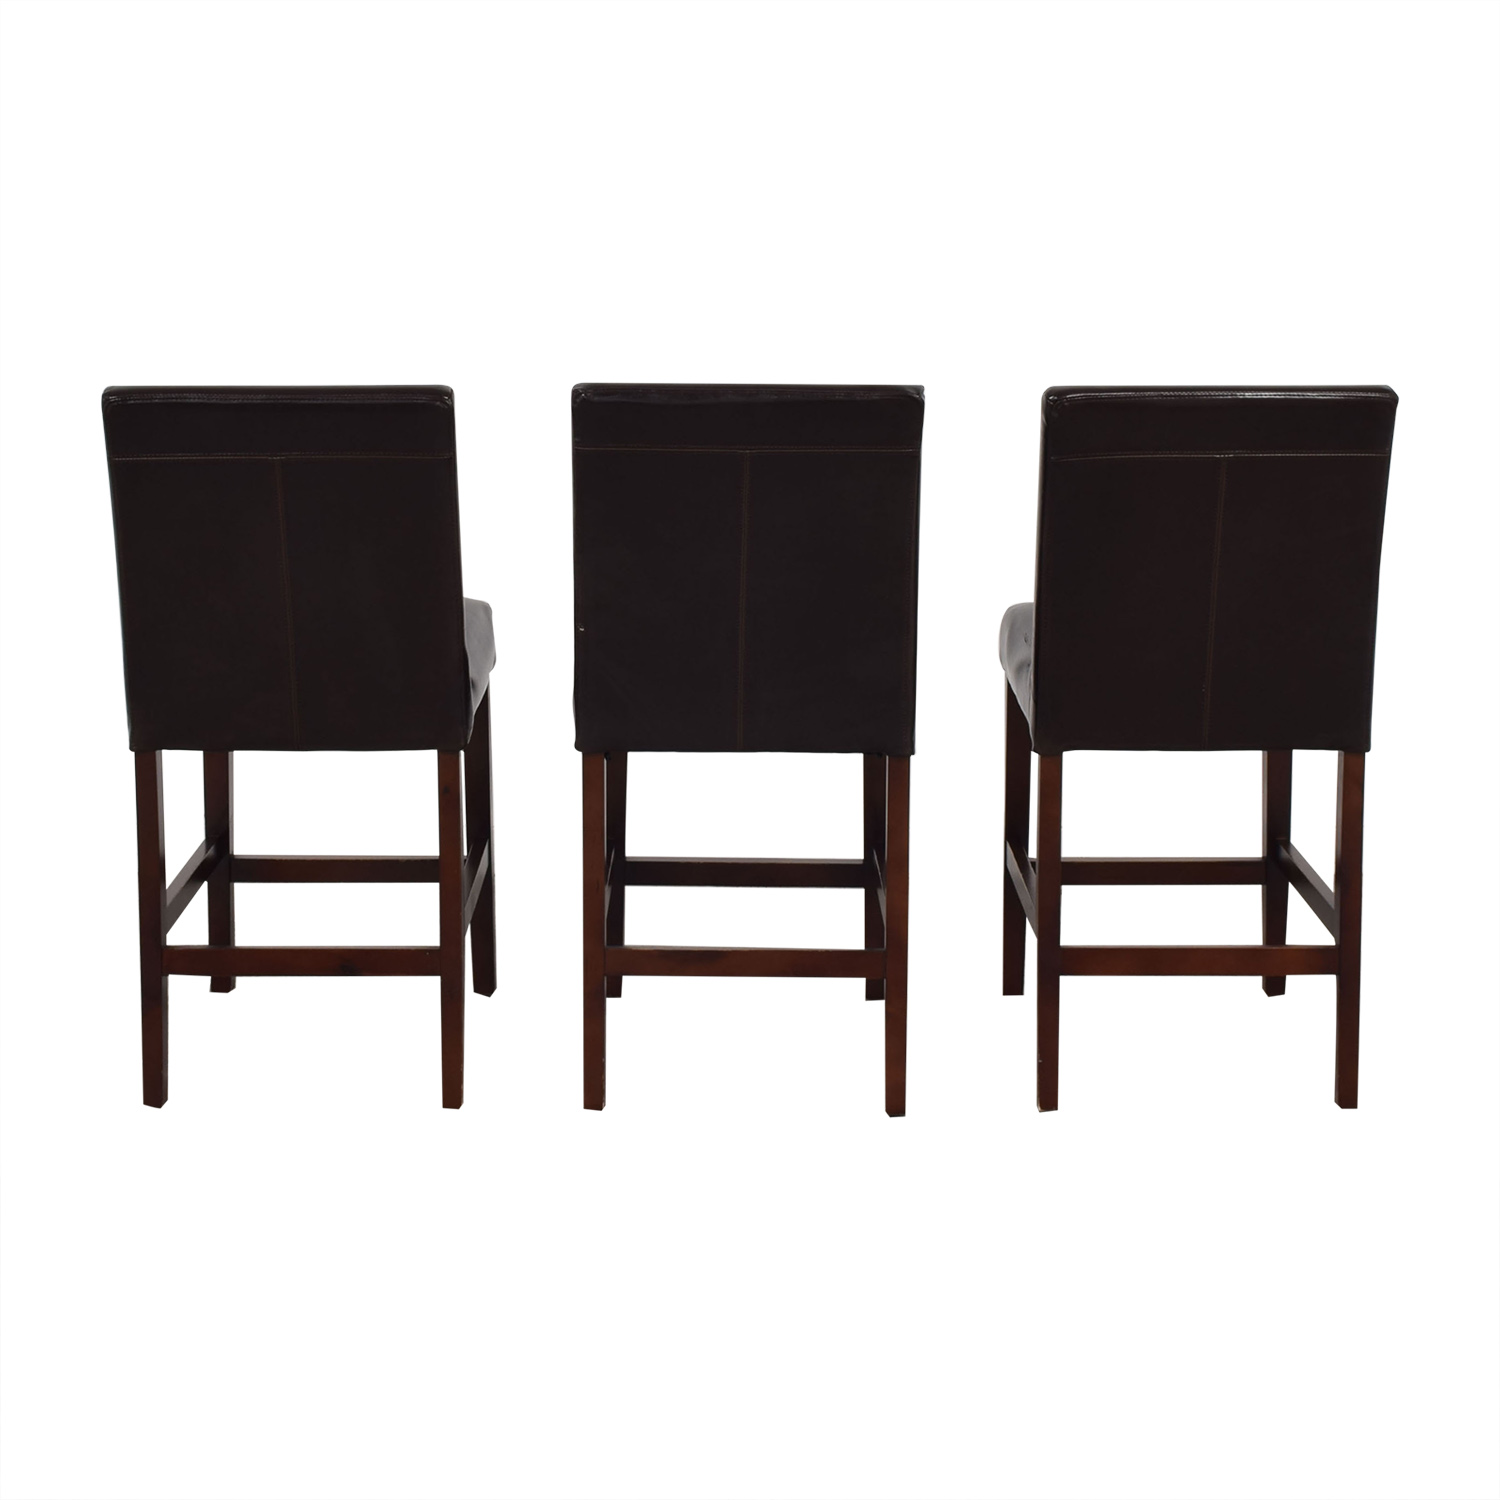 Four Hands Four Hands Ashford James Counter Stools pa